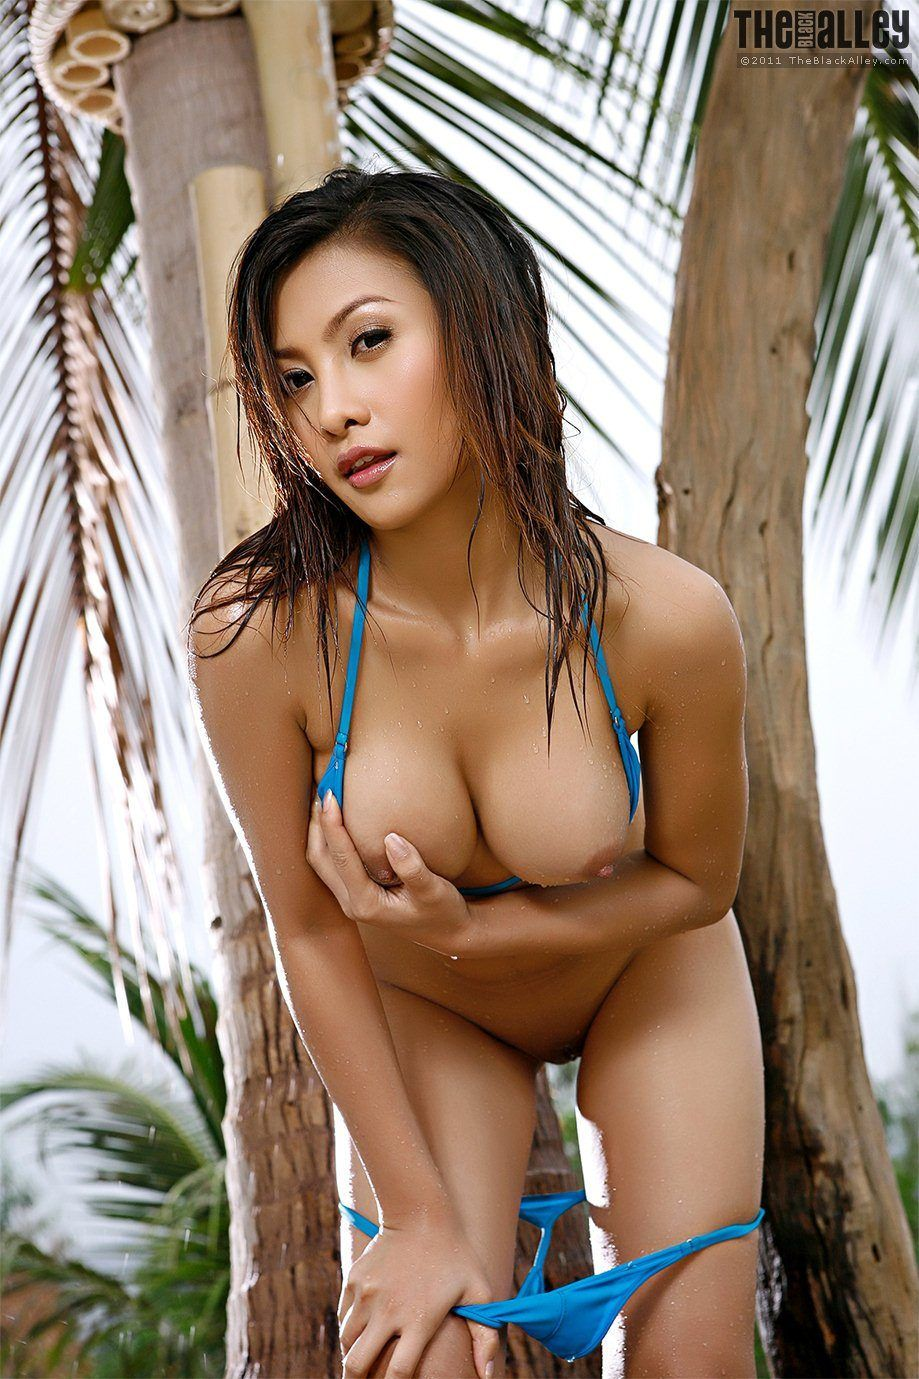 Soldier recomended Tiny busty brunette porn